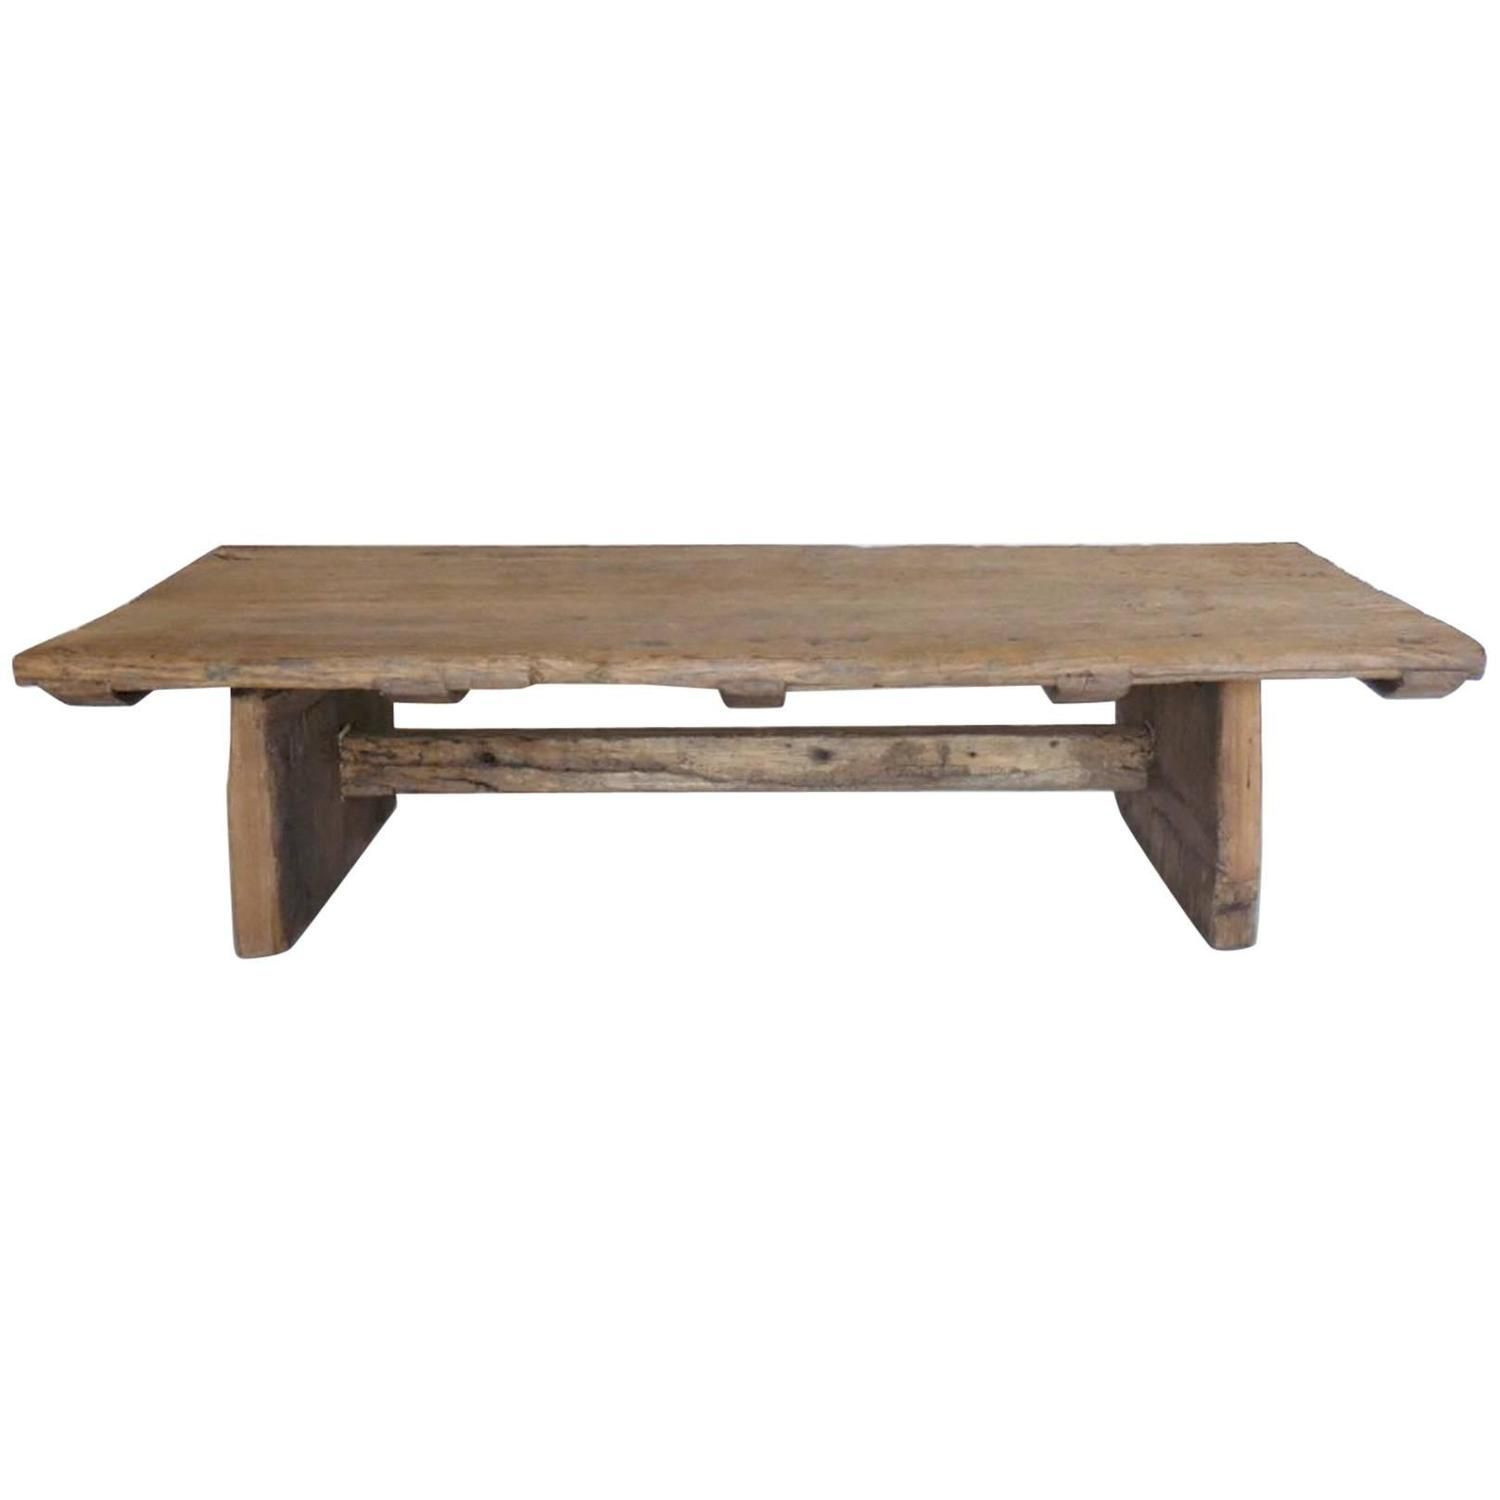 Japanese Elmwood Coffee Table See More Antique And Modern Coffee And Cocktail Tables At Https Ww Japanese Furniture Japanese Coffee Table Coffee Table Wood [ 1500 x 1500 Pixel ]